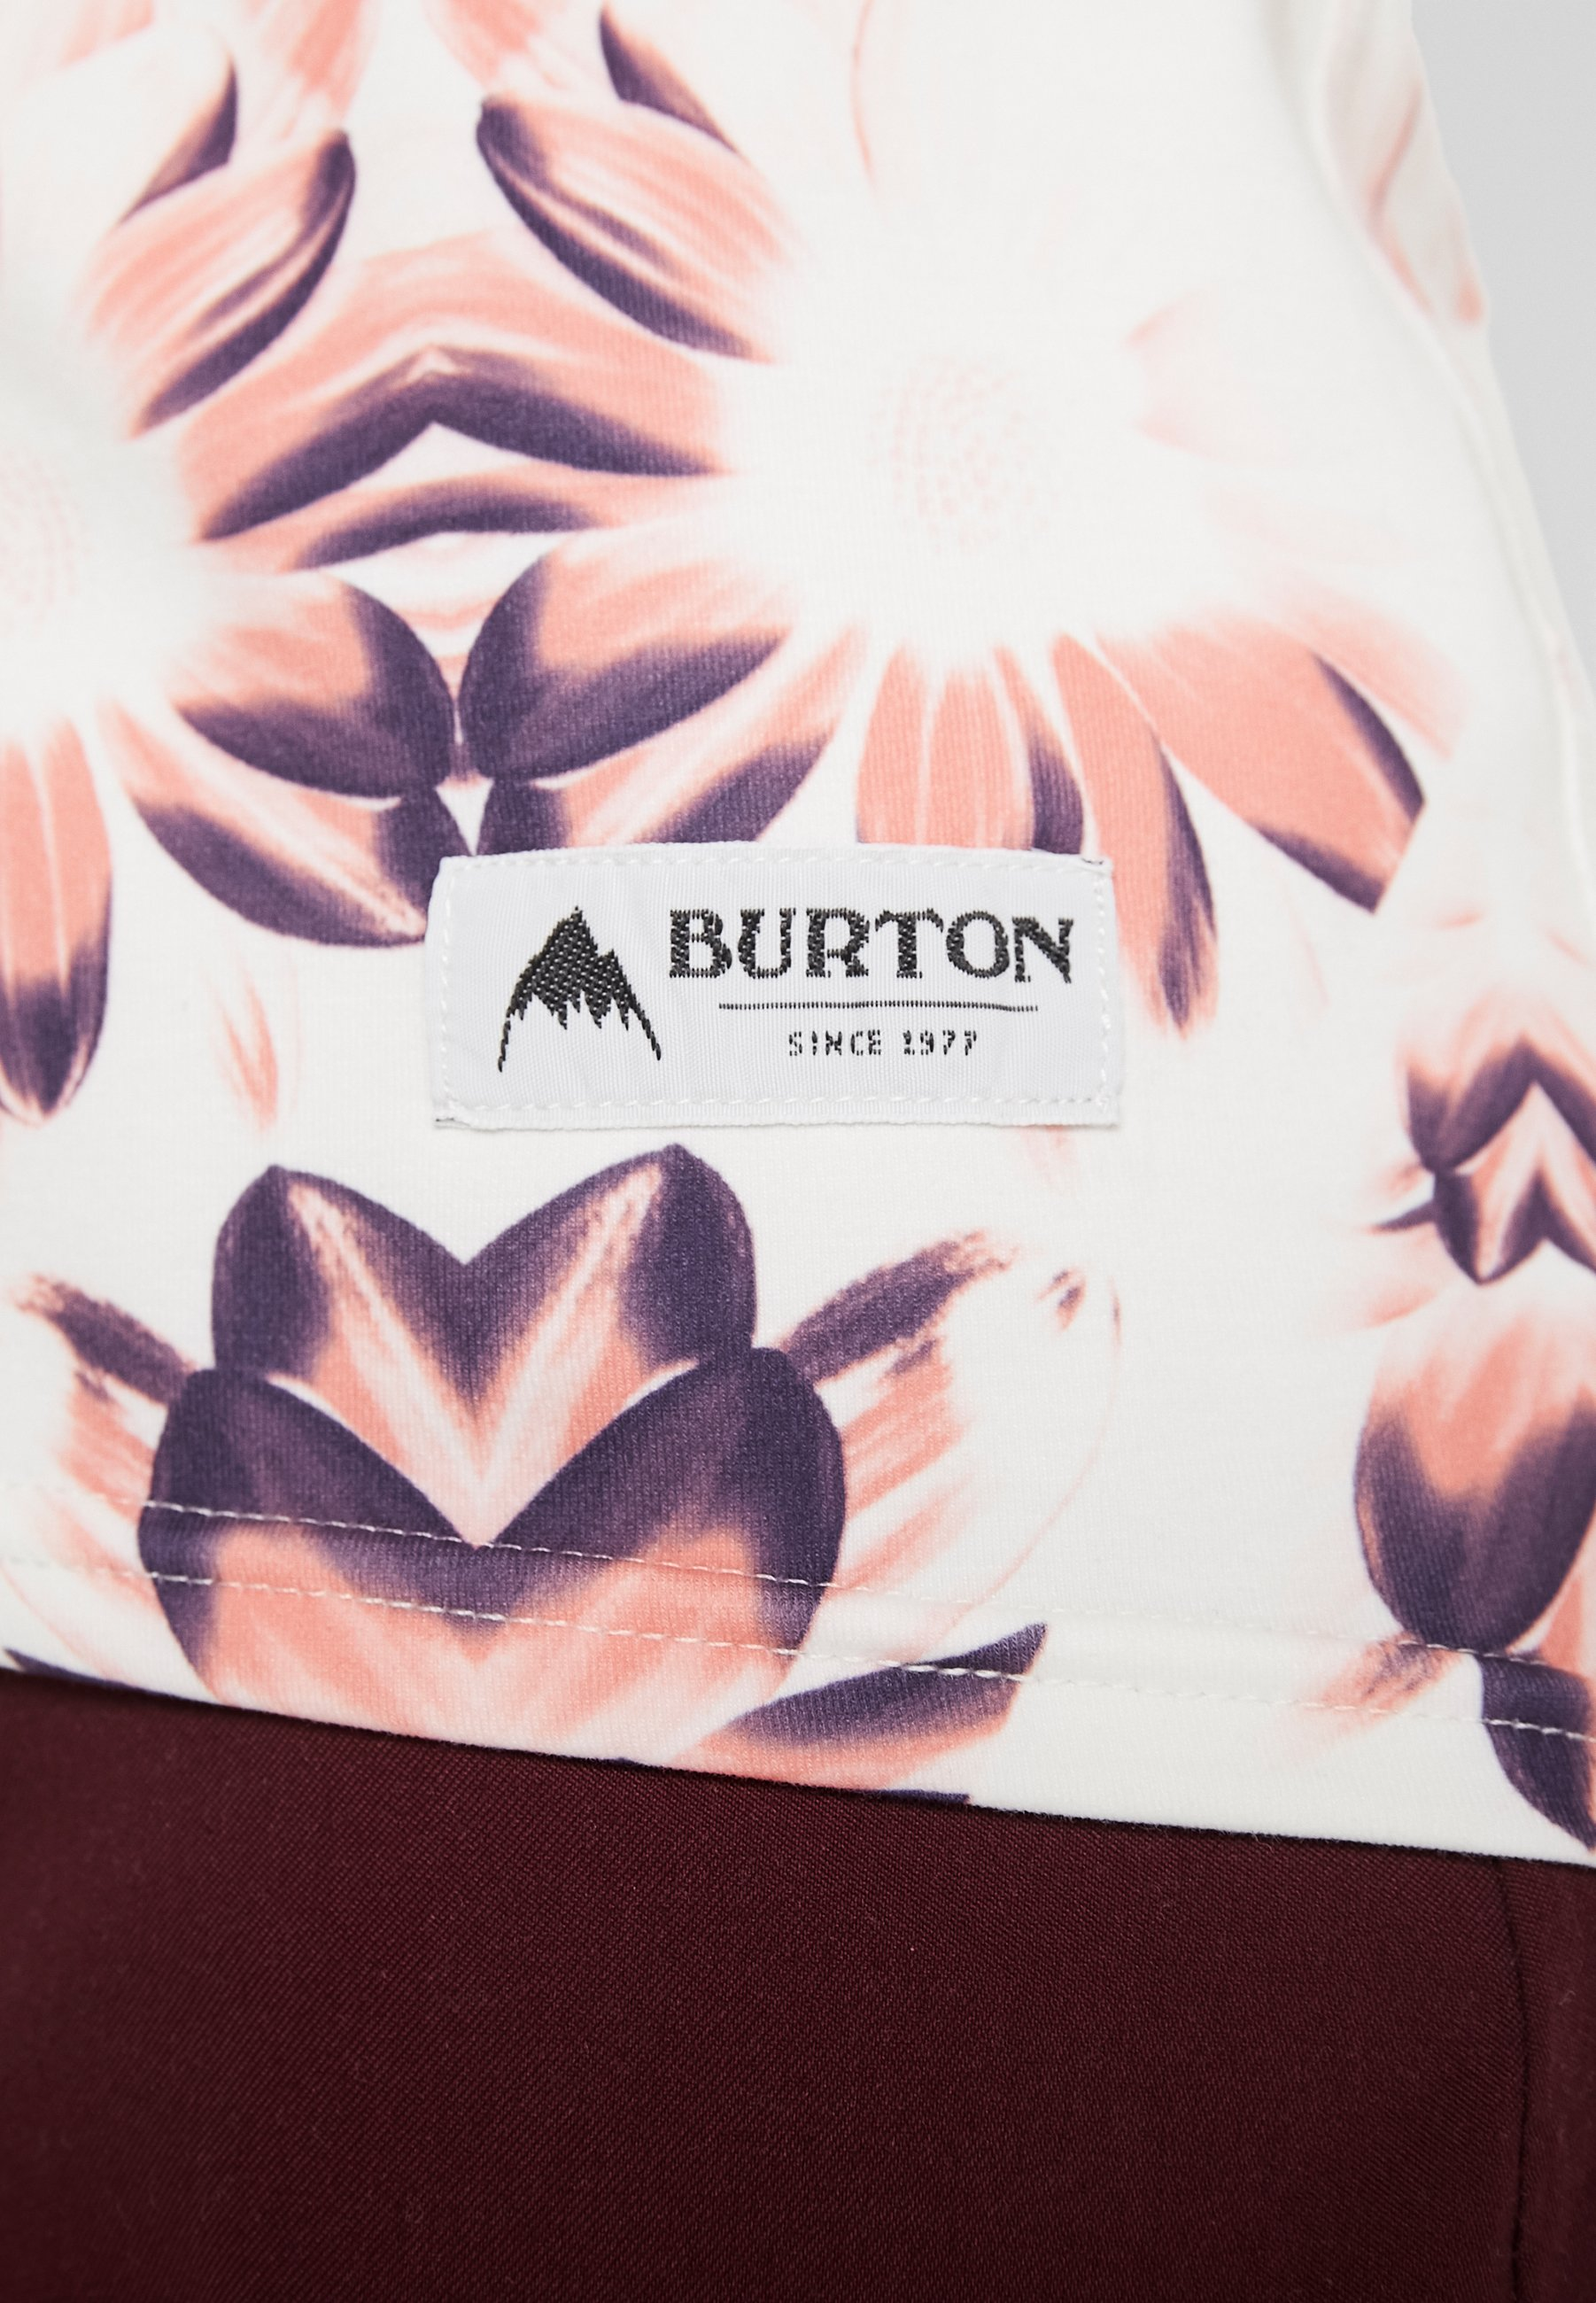 Burton White Stylus Intima Stout ExpeditionMaglietta mON0vw8n